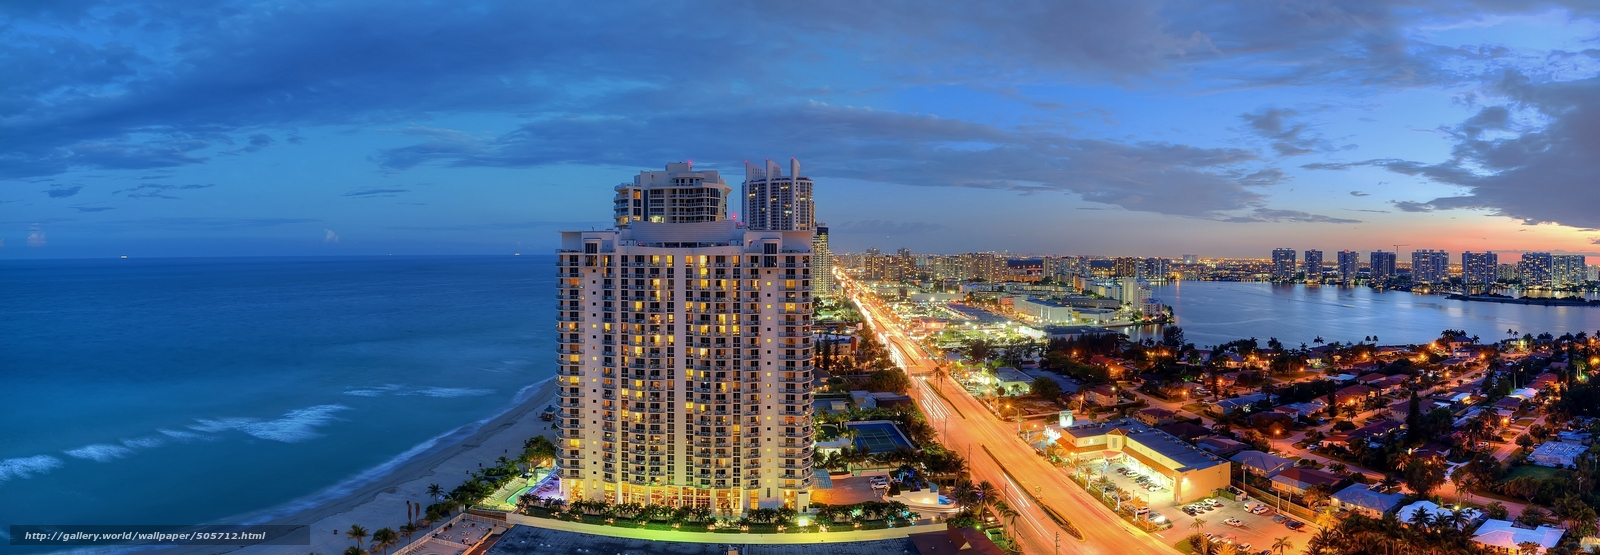 Download wallpaper sunny isles beach miami florida Sunny Isles 1600x555